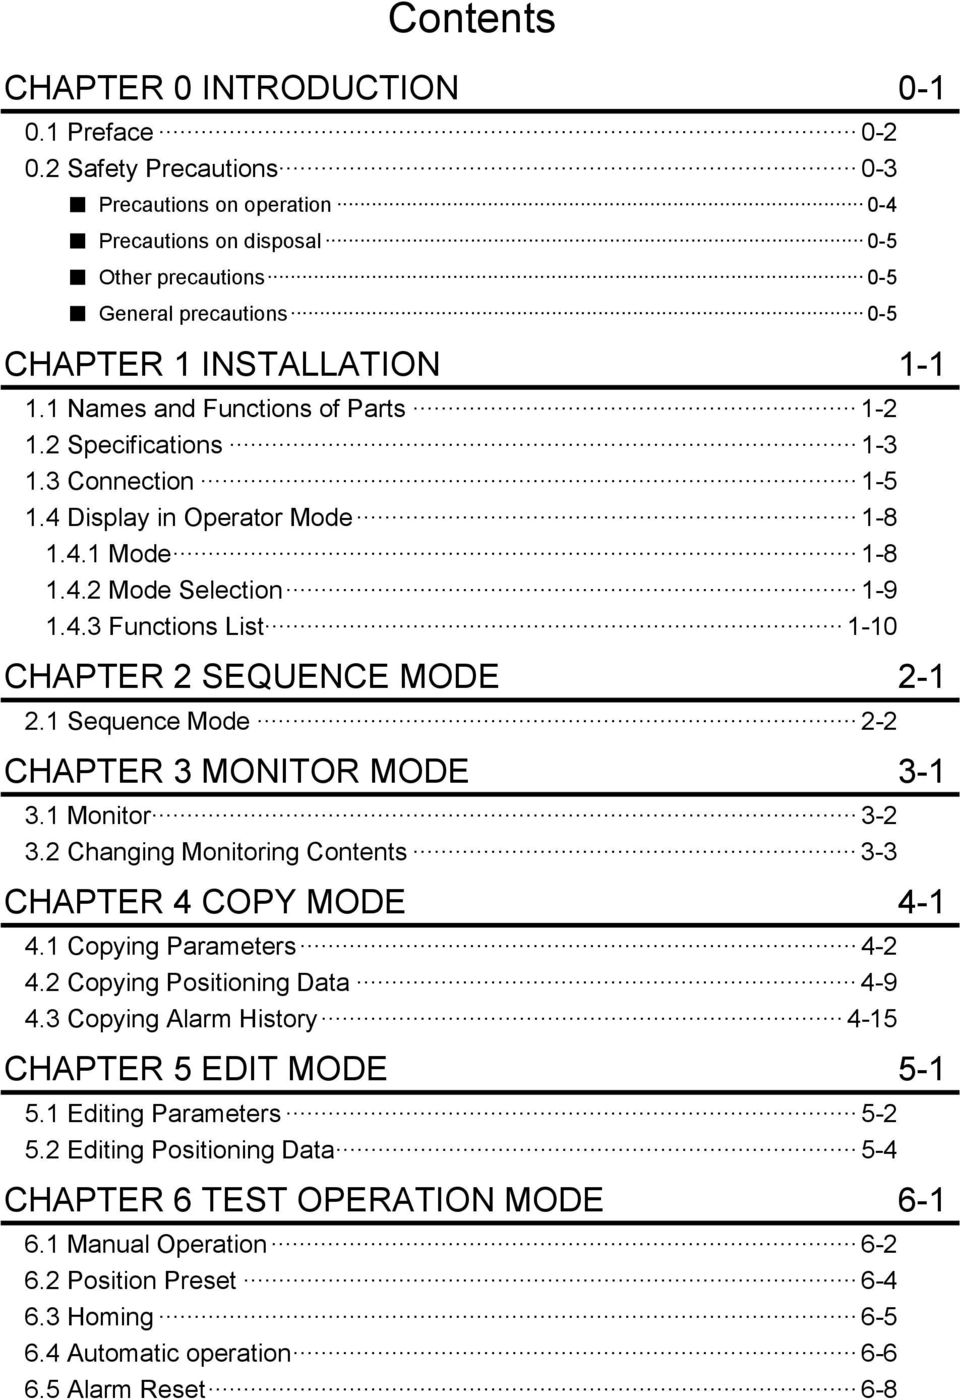 2 Specifications 1-3 1.3 Connection 1-5 1.4 Display in Operator Mode 1-8 1.4.1 Mode 1-8 1.4.2 Mode Selection 1-9 1.4.3 Functions List 1-10 CHAPTER 2 SEQUENCE MODE 2-1 2.